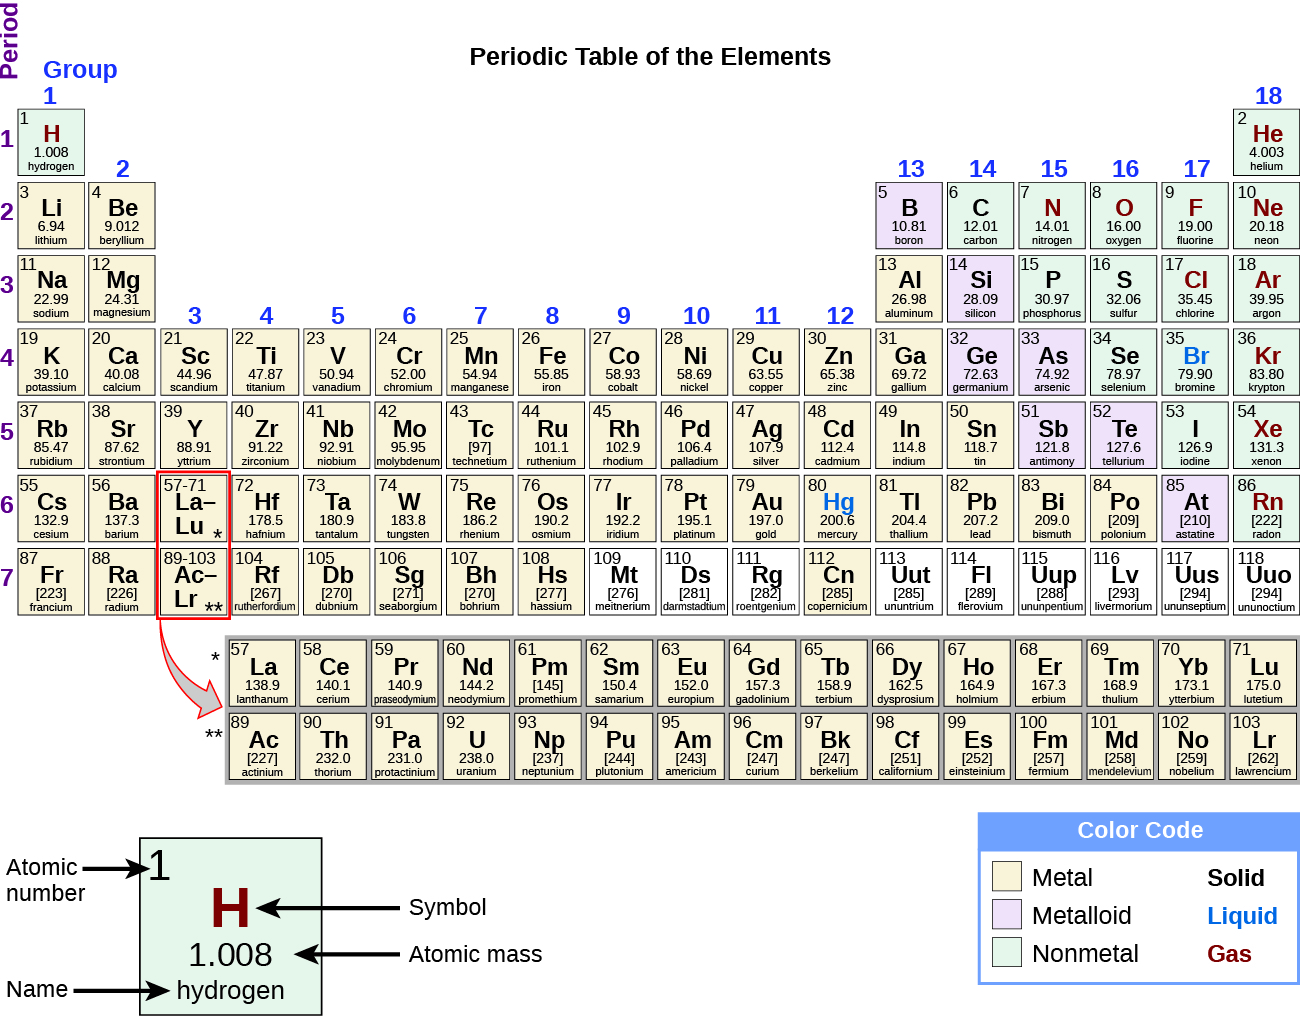 The Periodic Table Of Elements Atoms First Chemistry Openstax Cnx